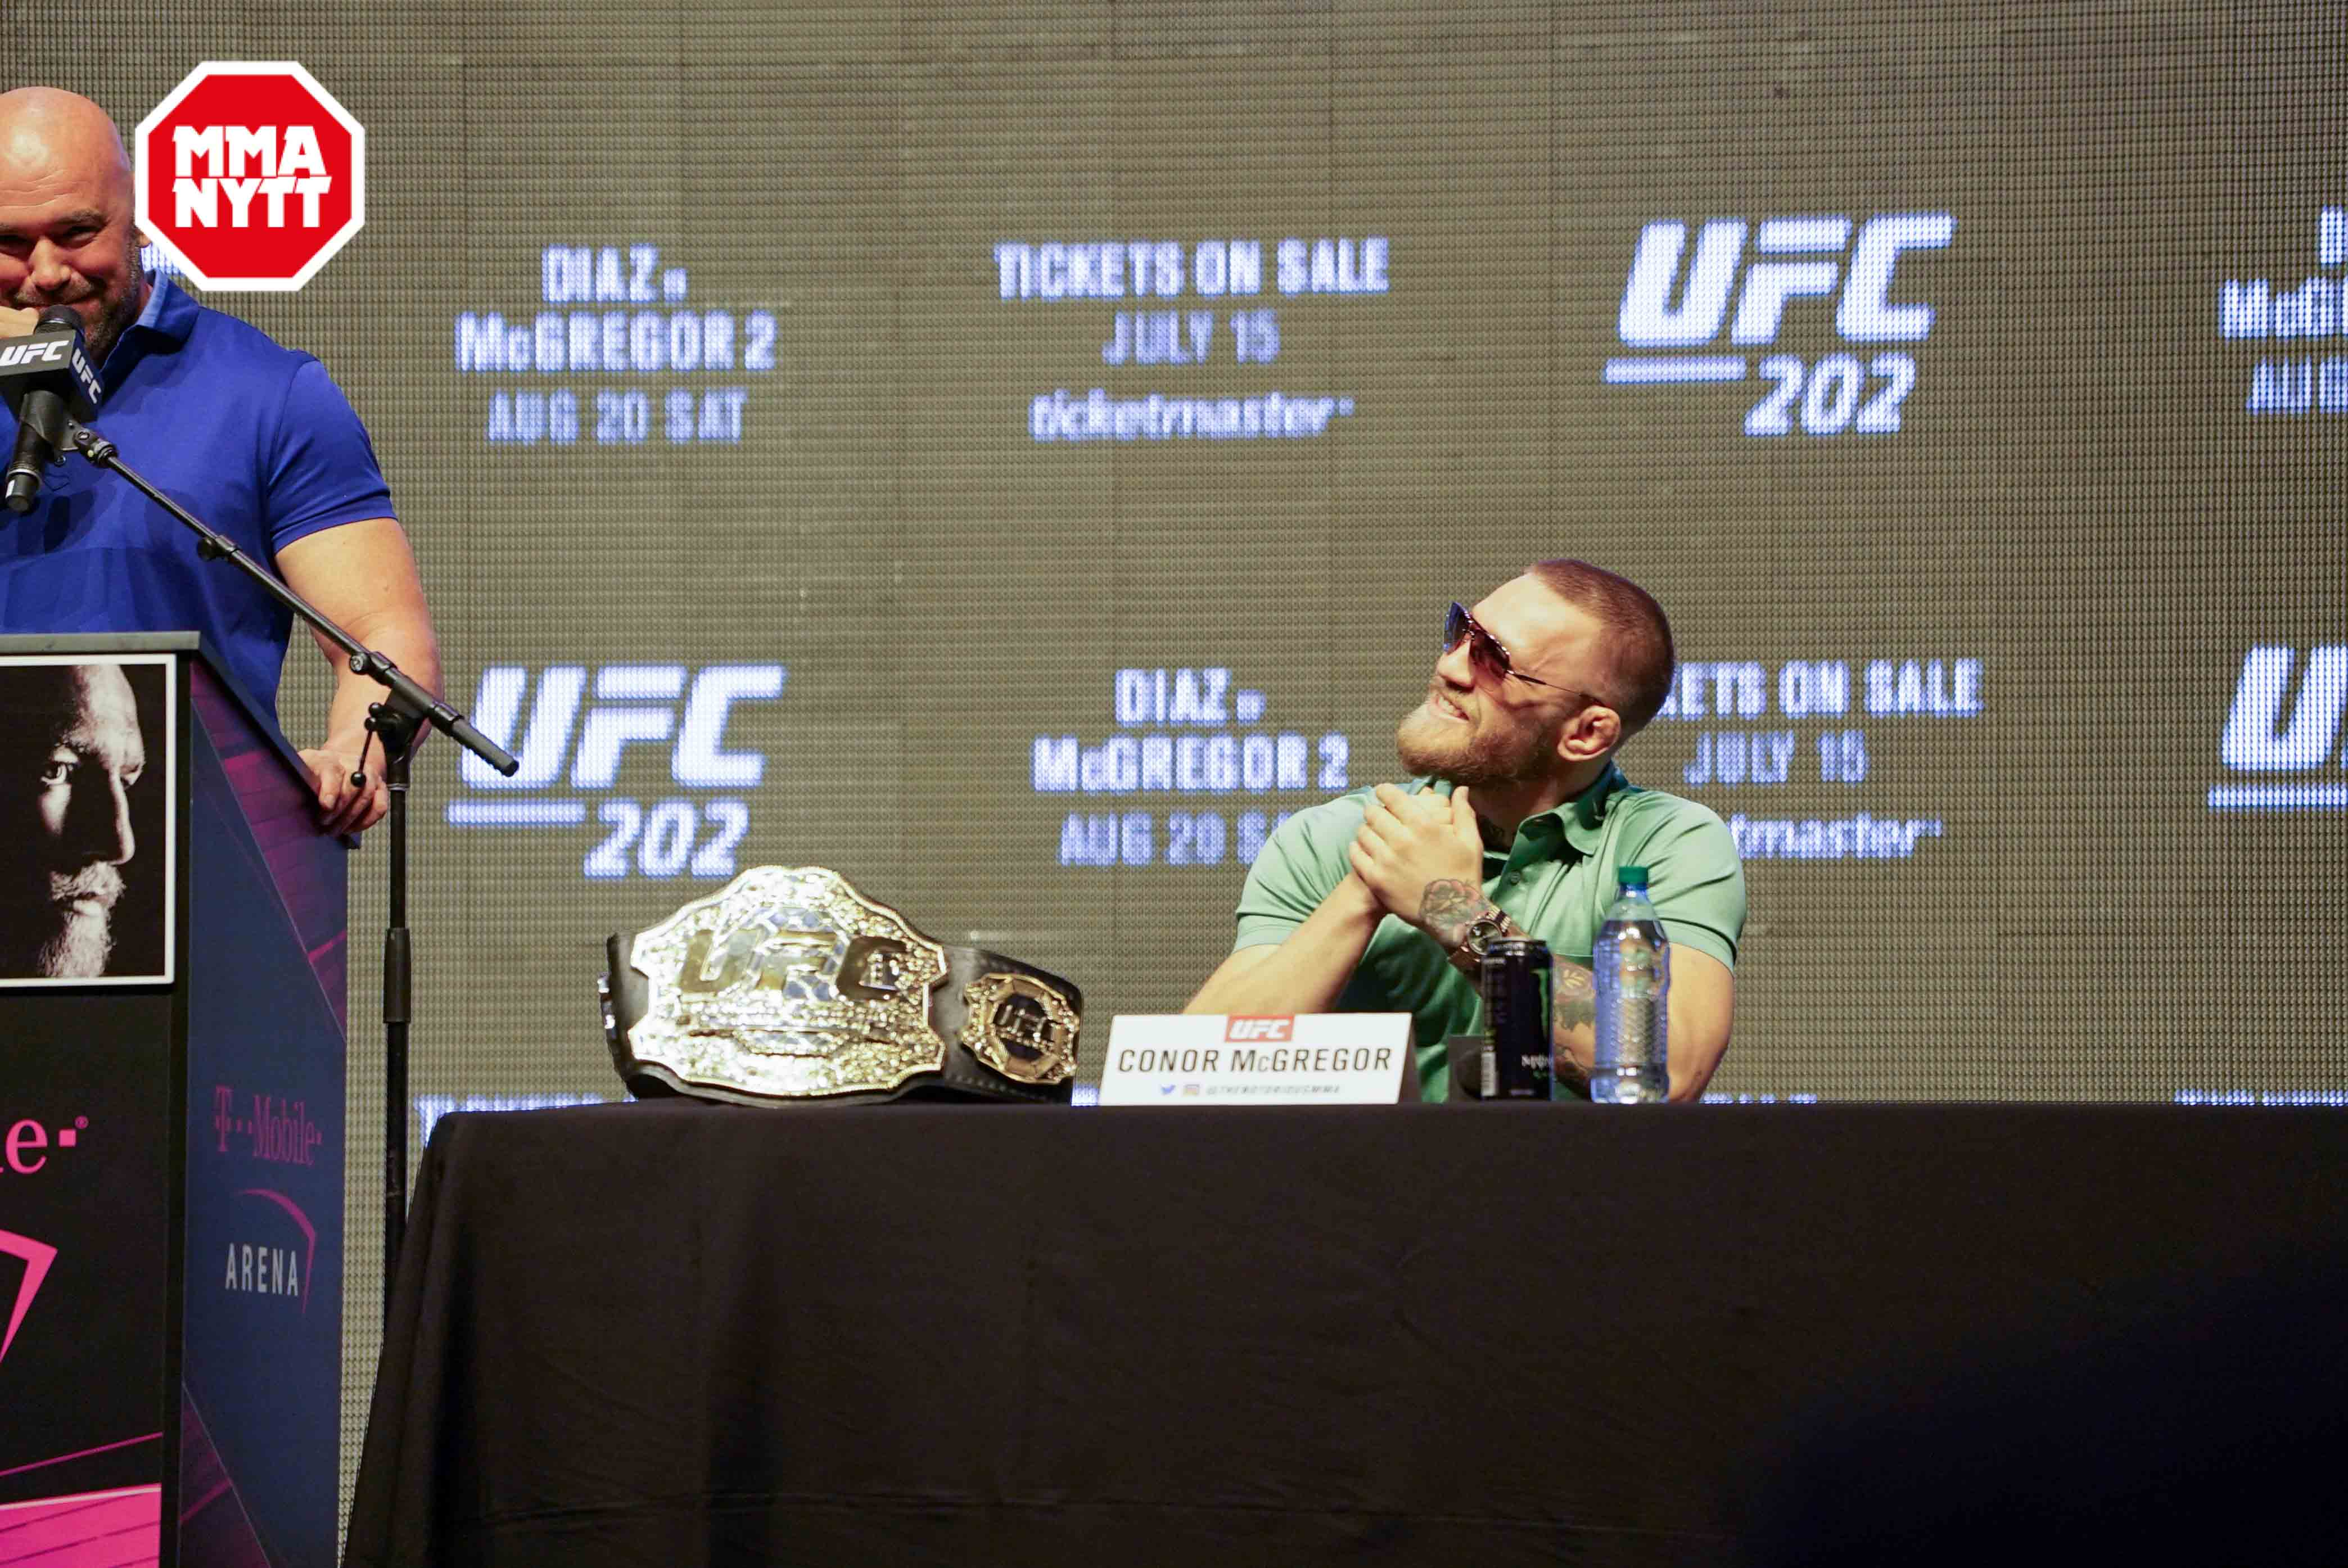 UFC 200 Las Vegas Conor McGregor Dana White 20160707 MMAnytt.se Media Day Vince Cachero